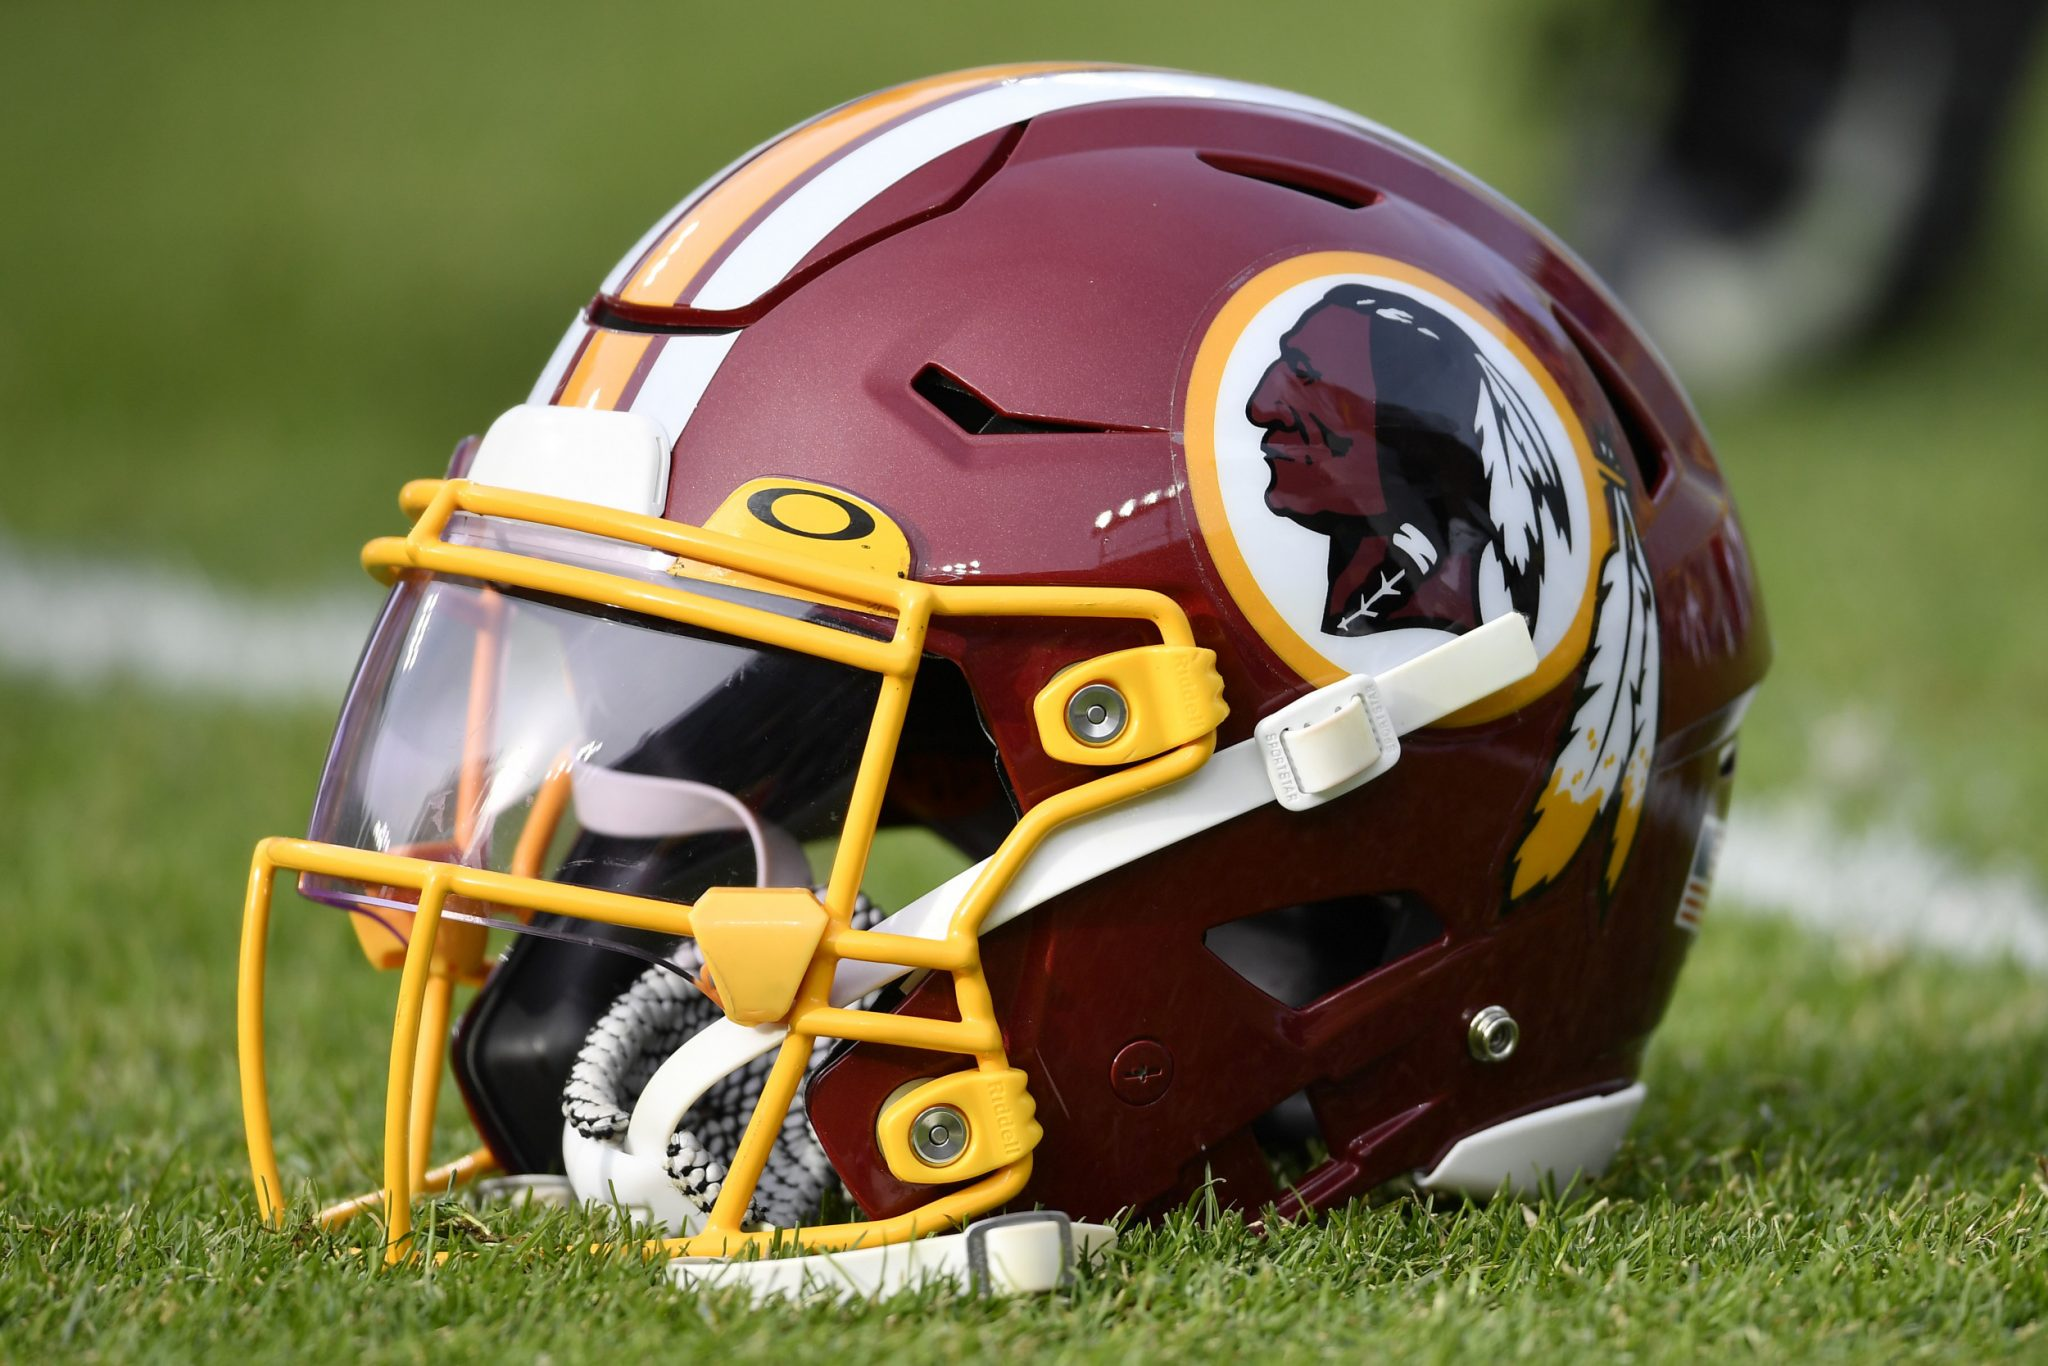 There is a 100% chance the Washington Redskins will change their name